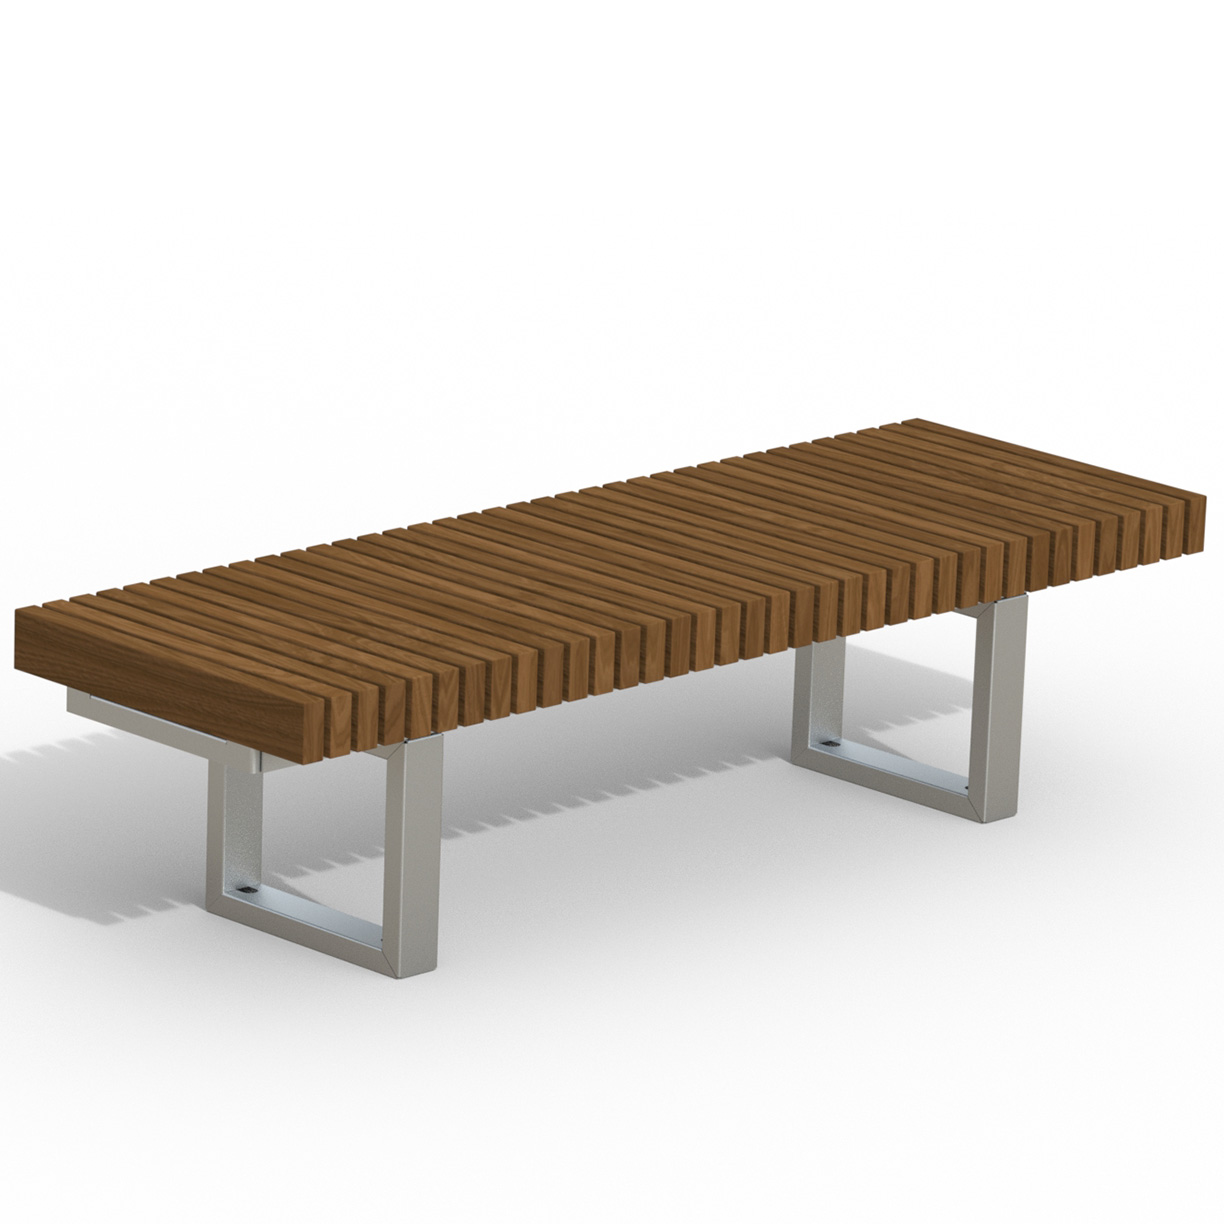 INF24L6T  Infinity Collection 2' x 6' Linear Thermory Slat Bench